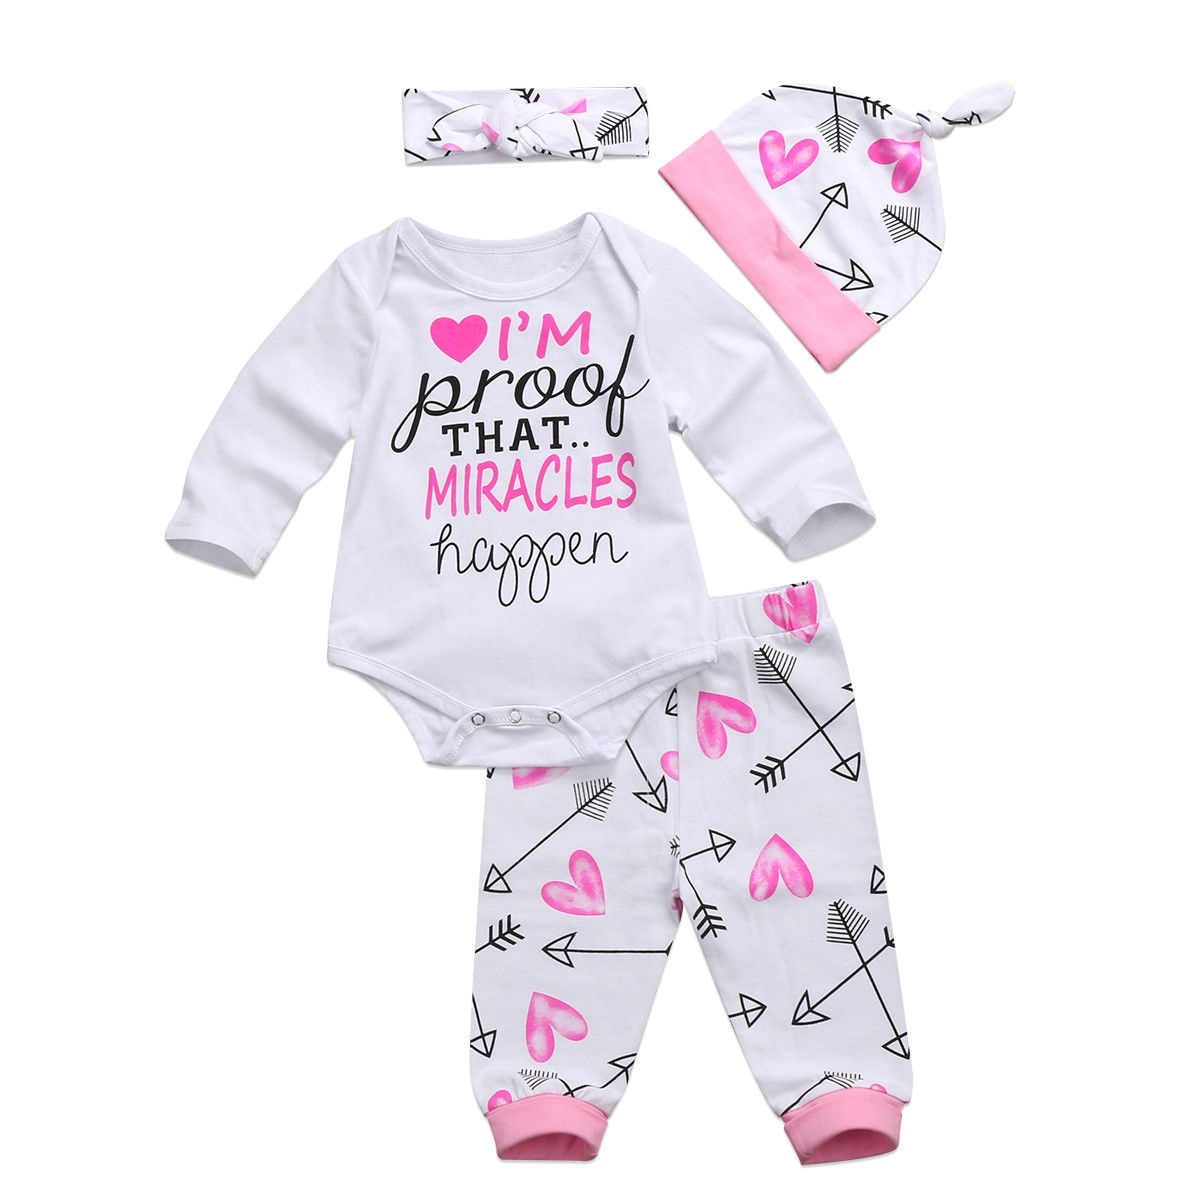 Newborn Infant Outfits 4pcs Newborn Baby Boy Girl Clothes Letter Print Long Sleeve Romper Tops Pant Trouser Headband Hat Outfit Children Clothing Set